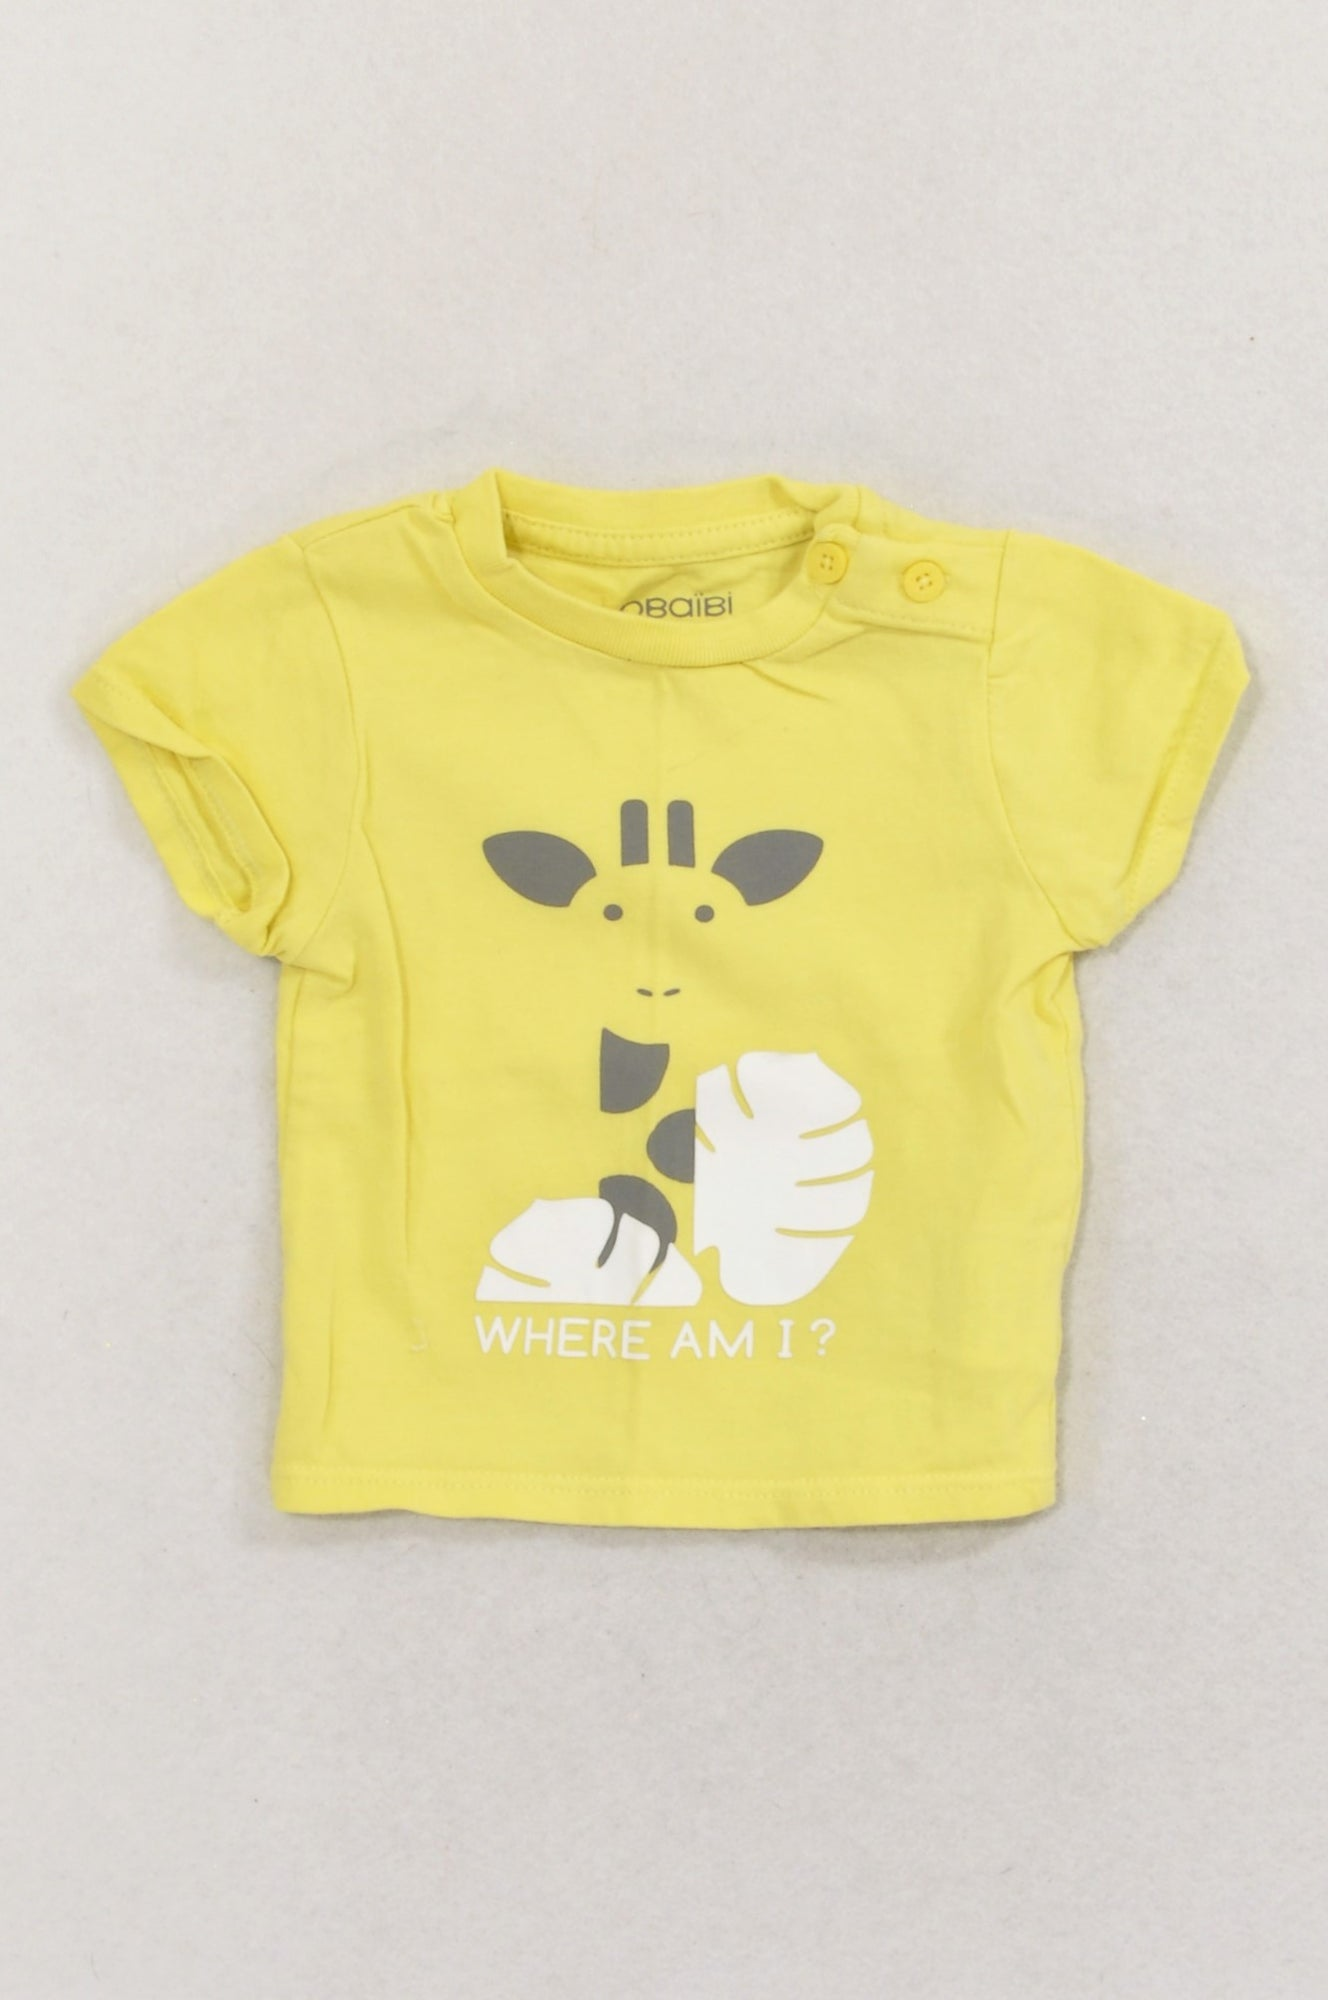 Obaibi Yellow Giraffe Where Am I? T-shirt Unisex N-B